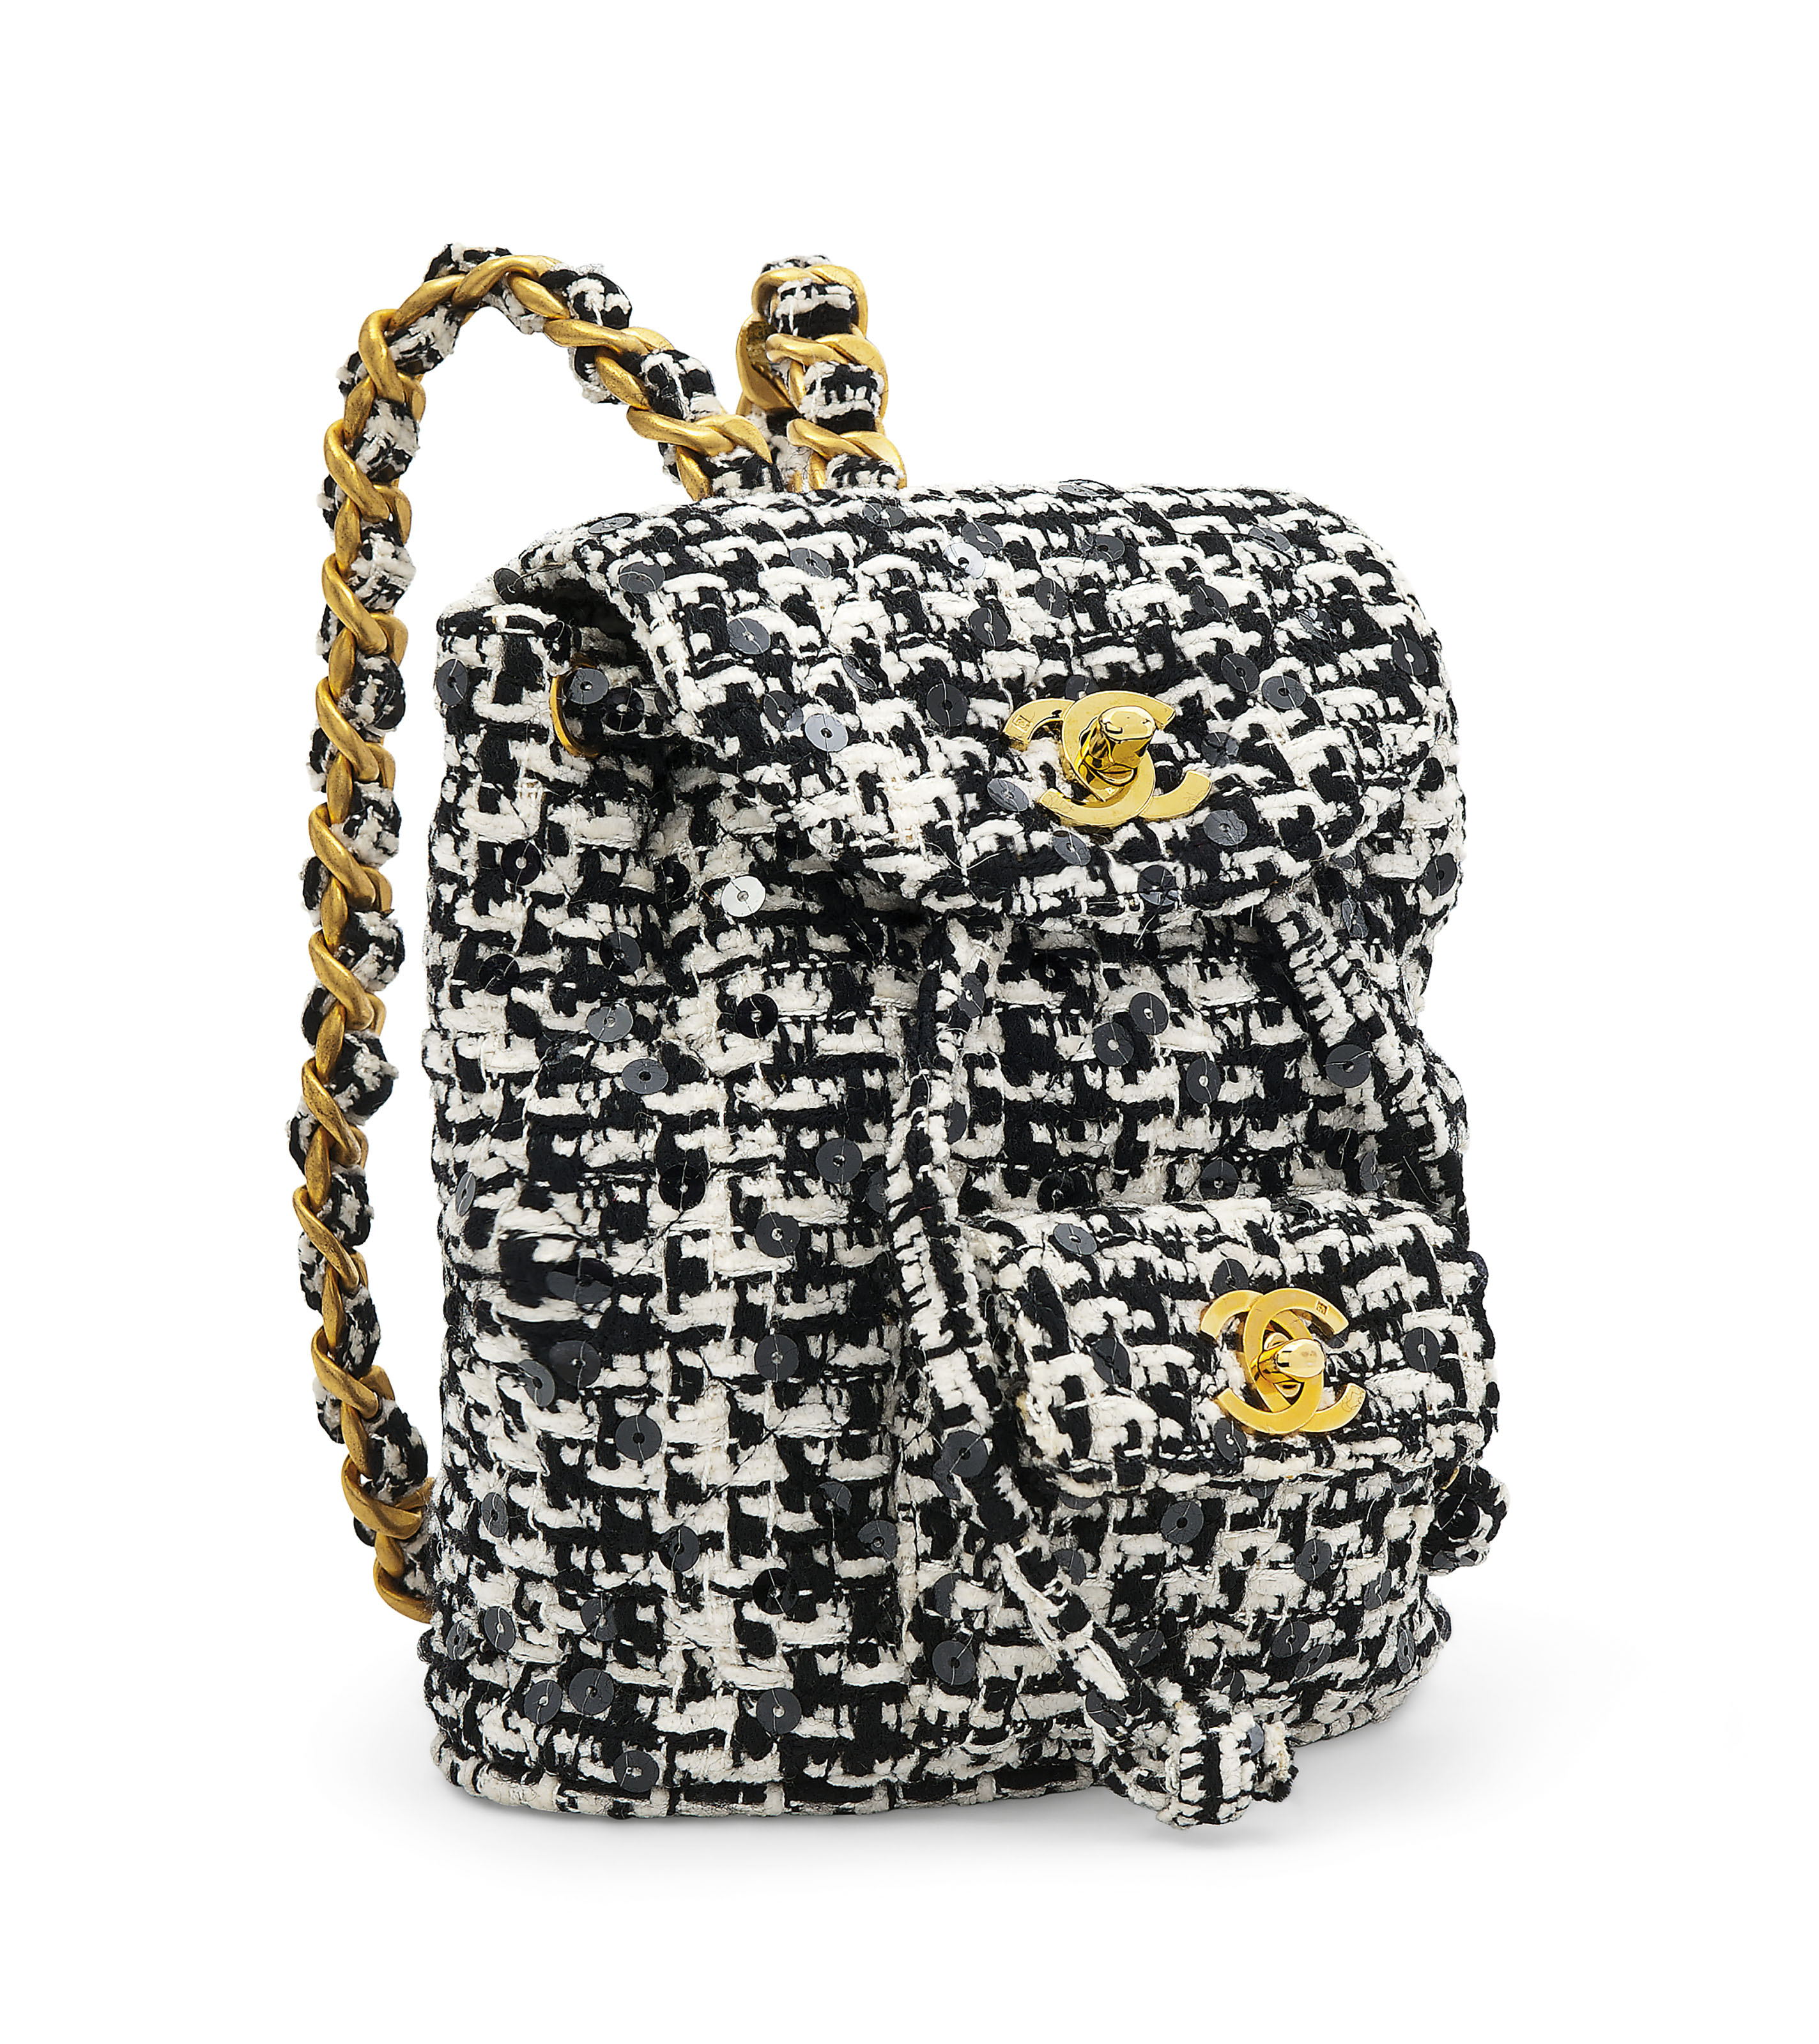 223a76cdc50d A BLACK & WHITE TWEED BACKPACK WITH GOLD HARDWARE | CHANEL, 1994 ...